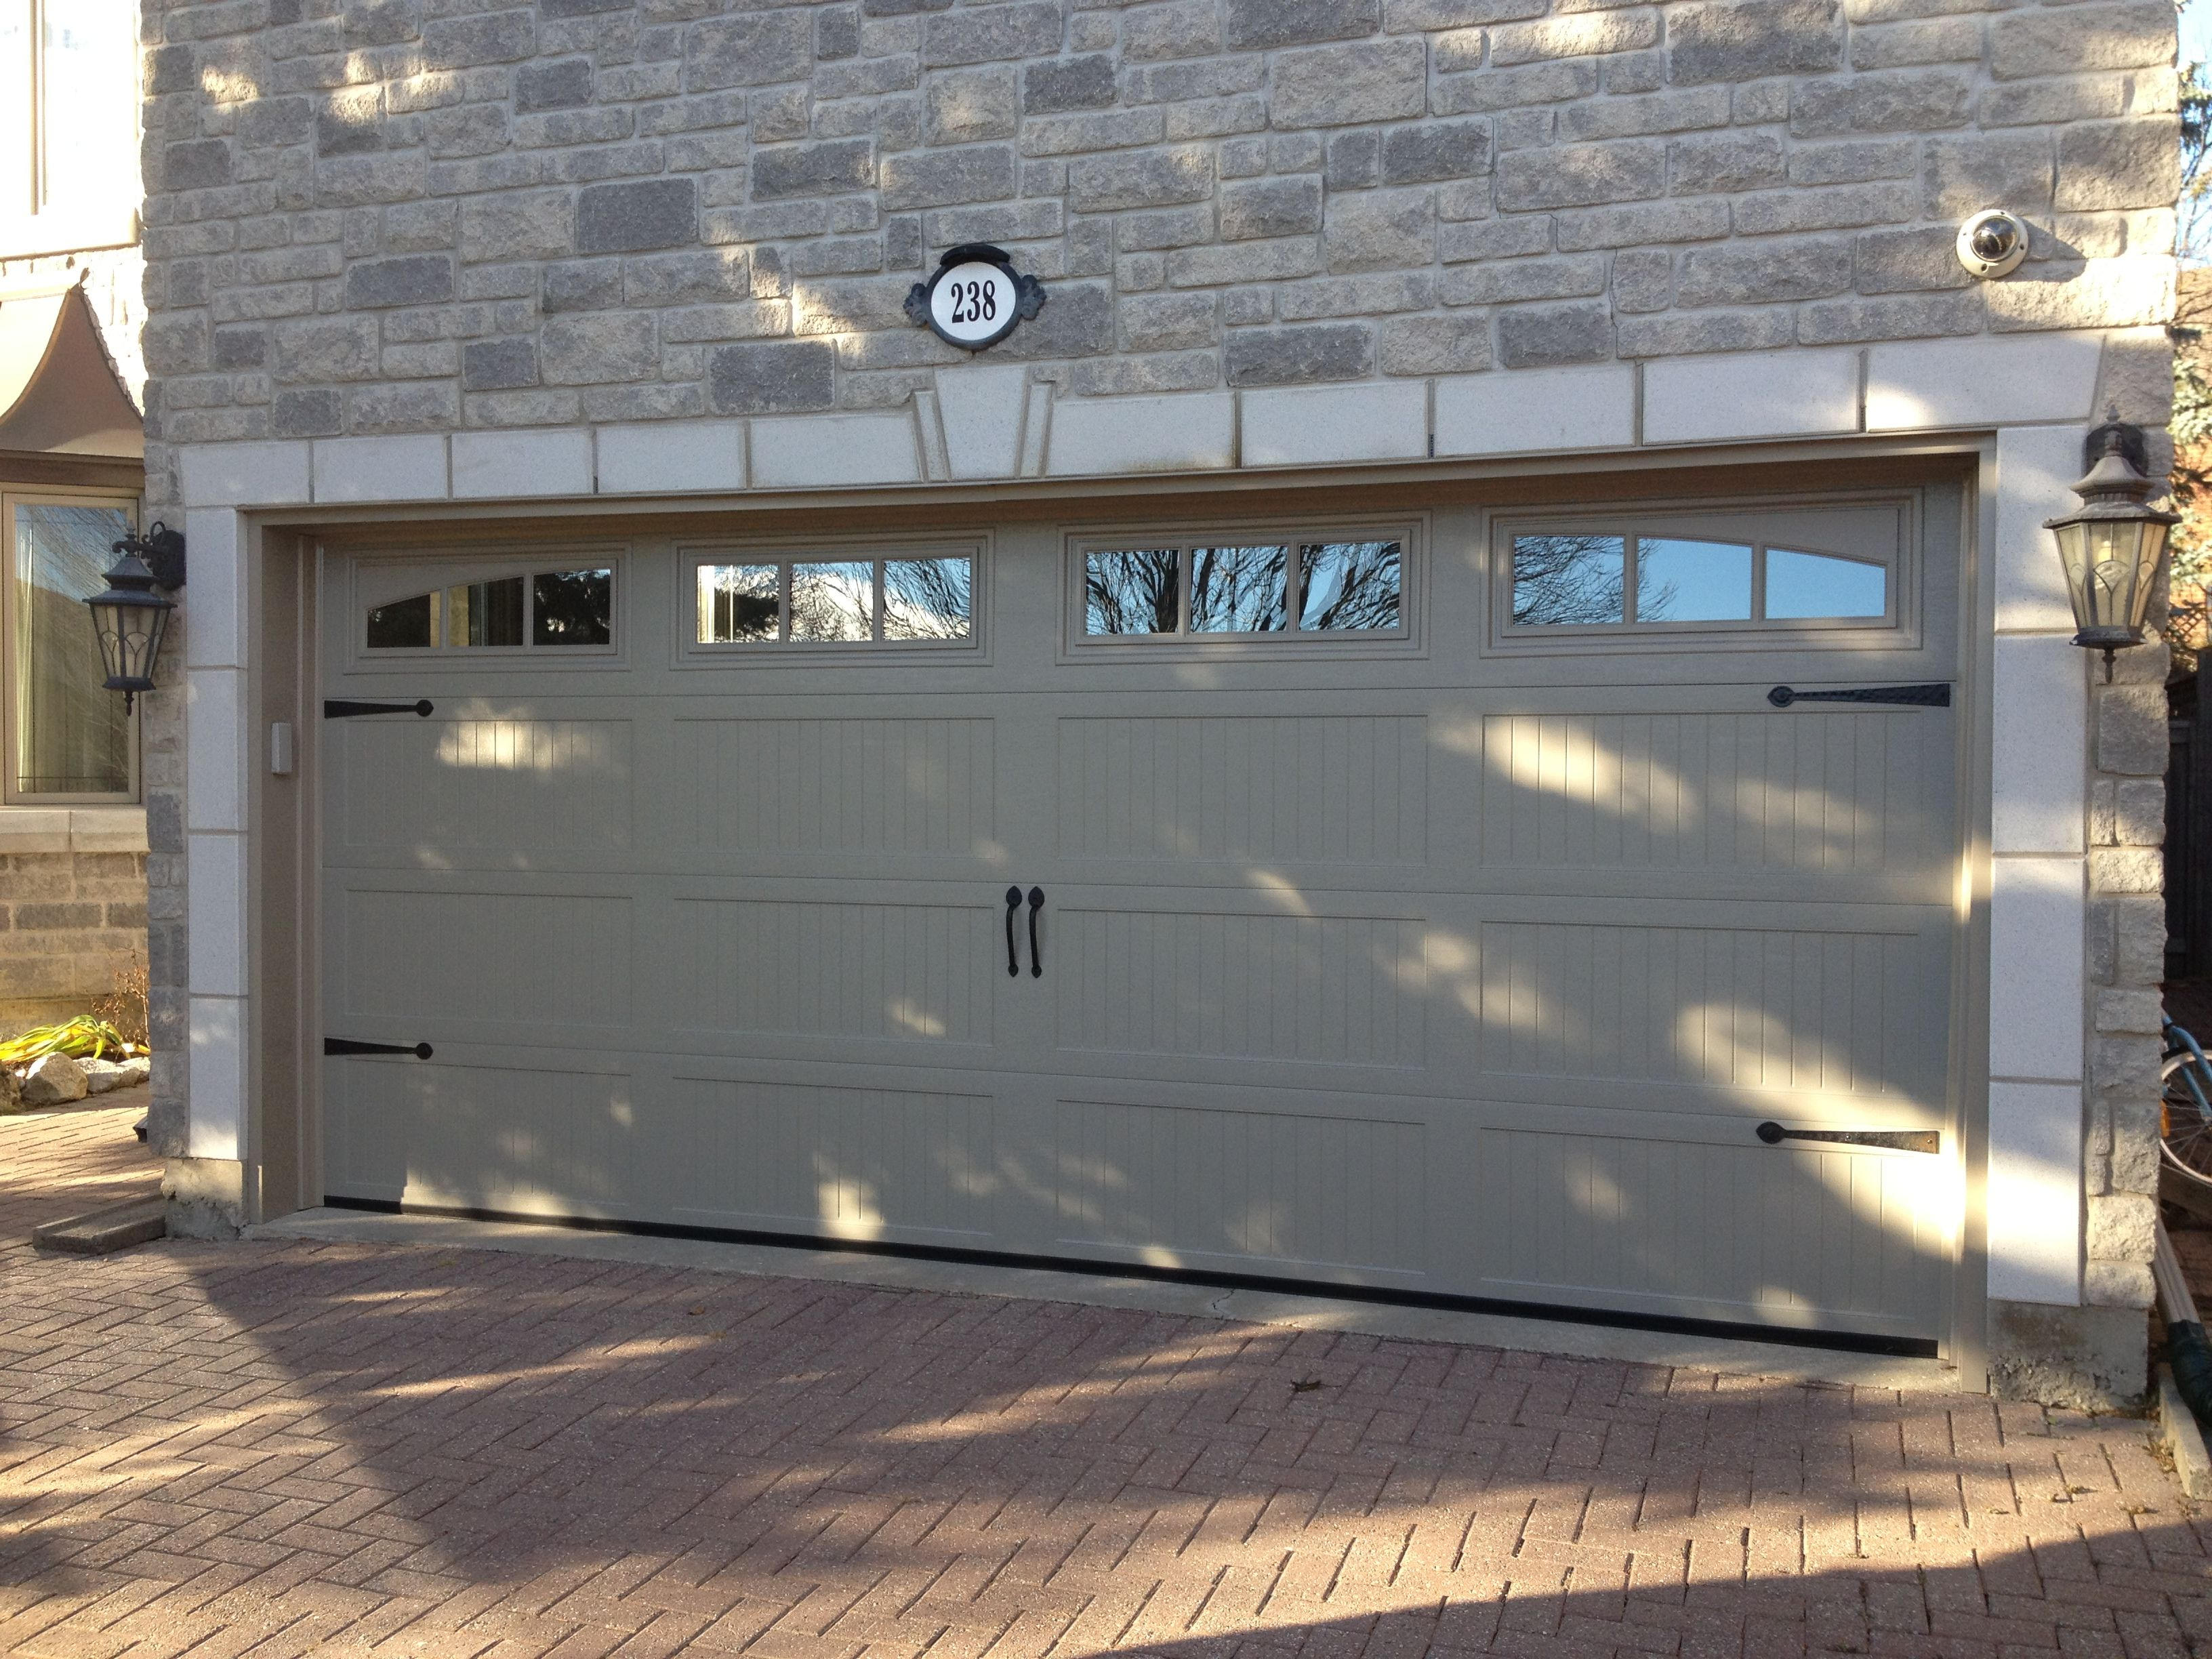 Haas 664 Carriage Door In Sandstone With Arched Windows And Wrought Iron  Decorative Hardware